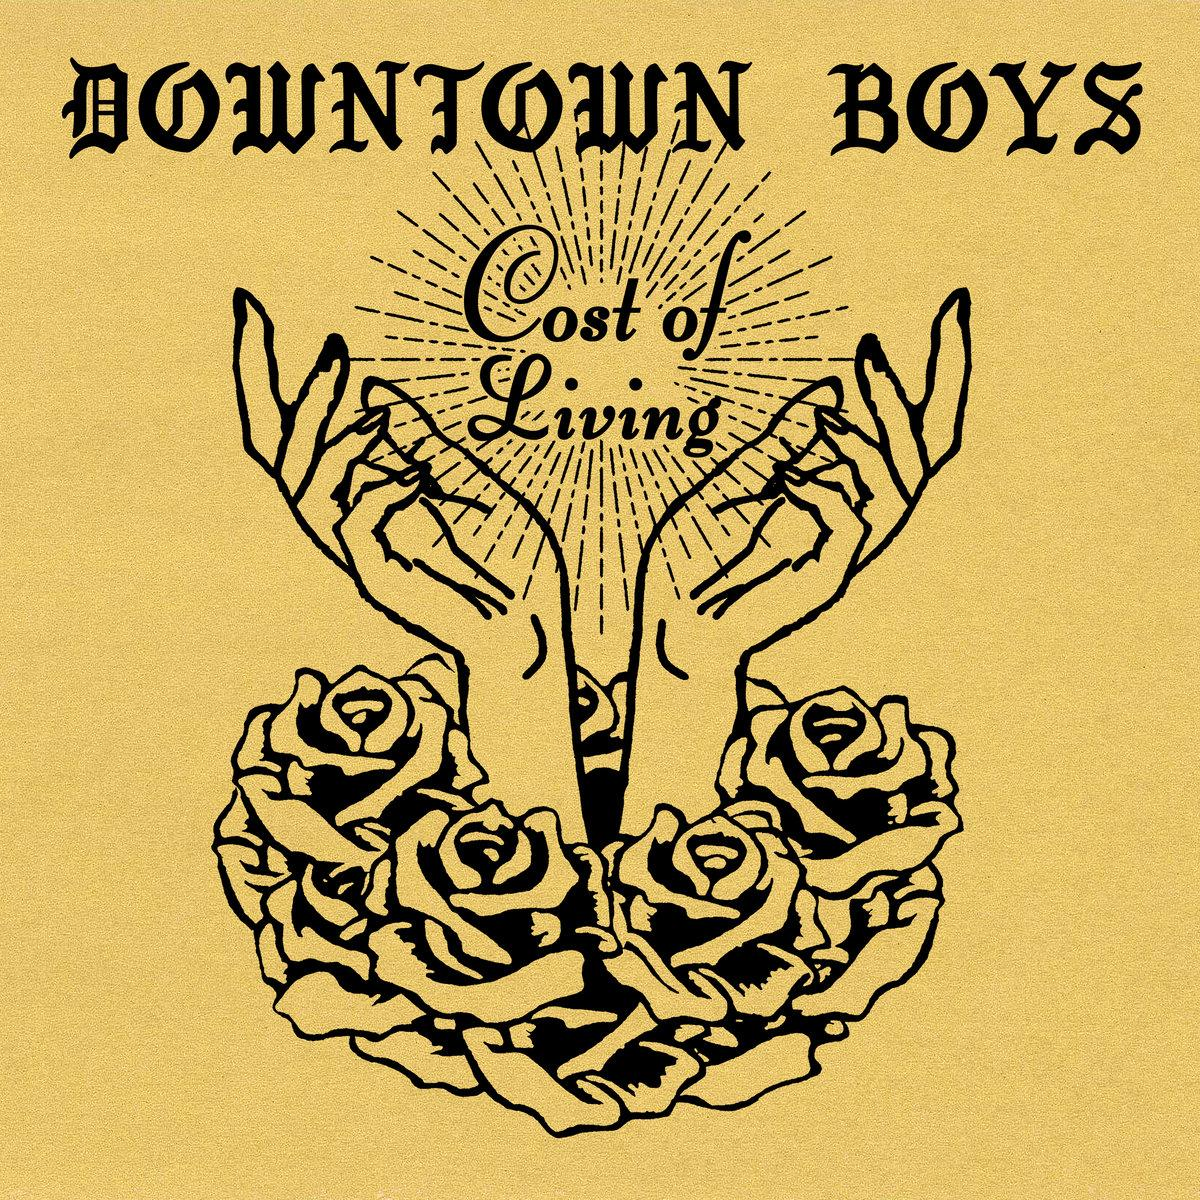 Downtown Boys – Cost Of Living (Sub Pop / Cargo)